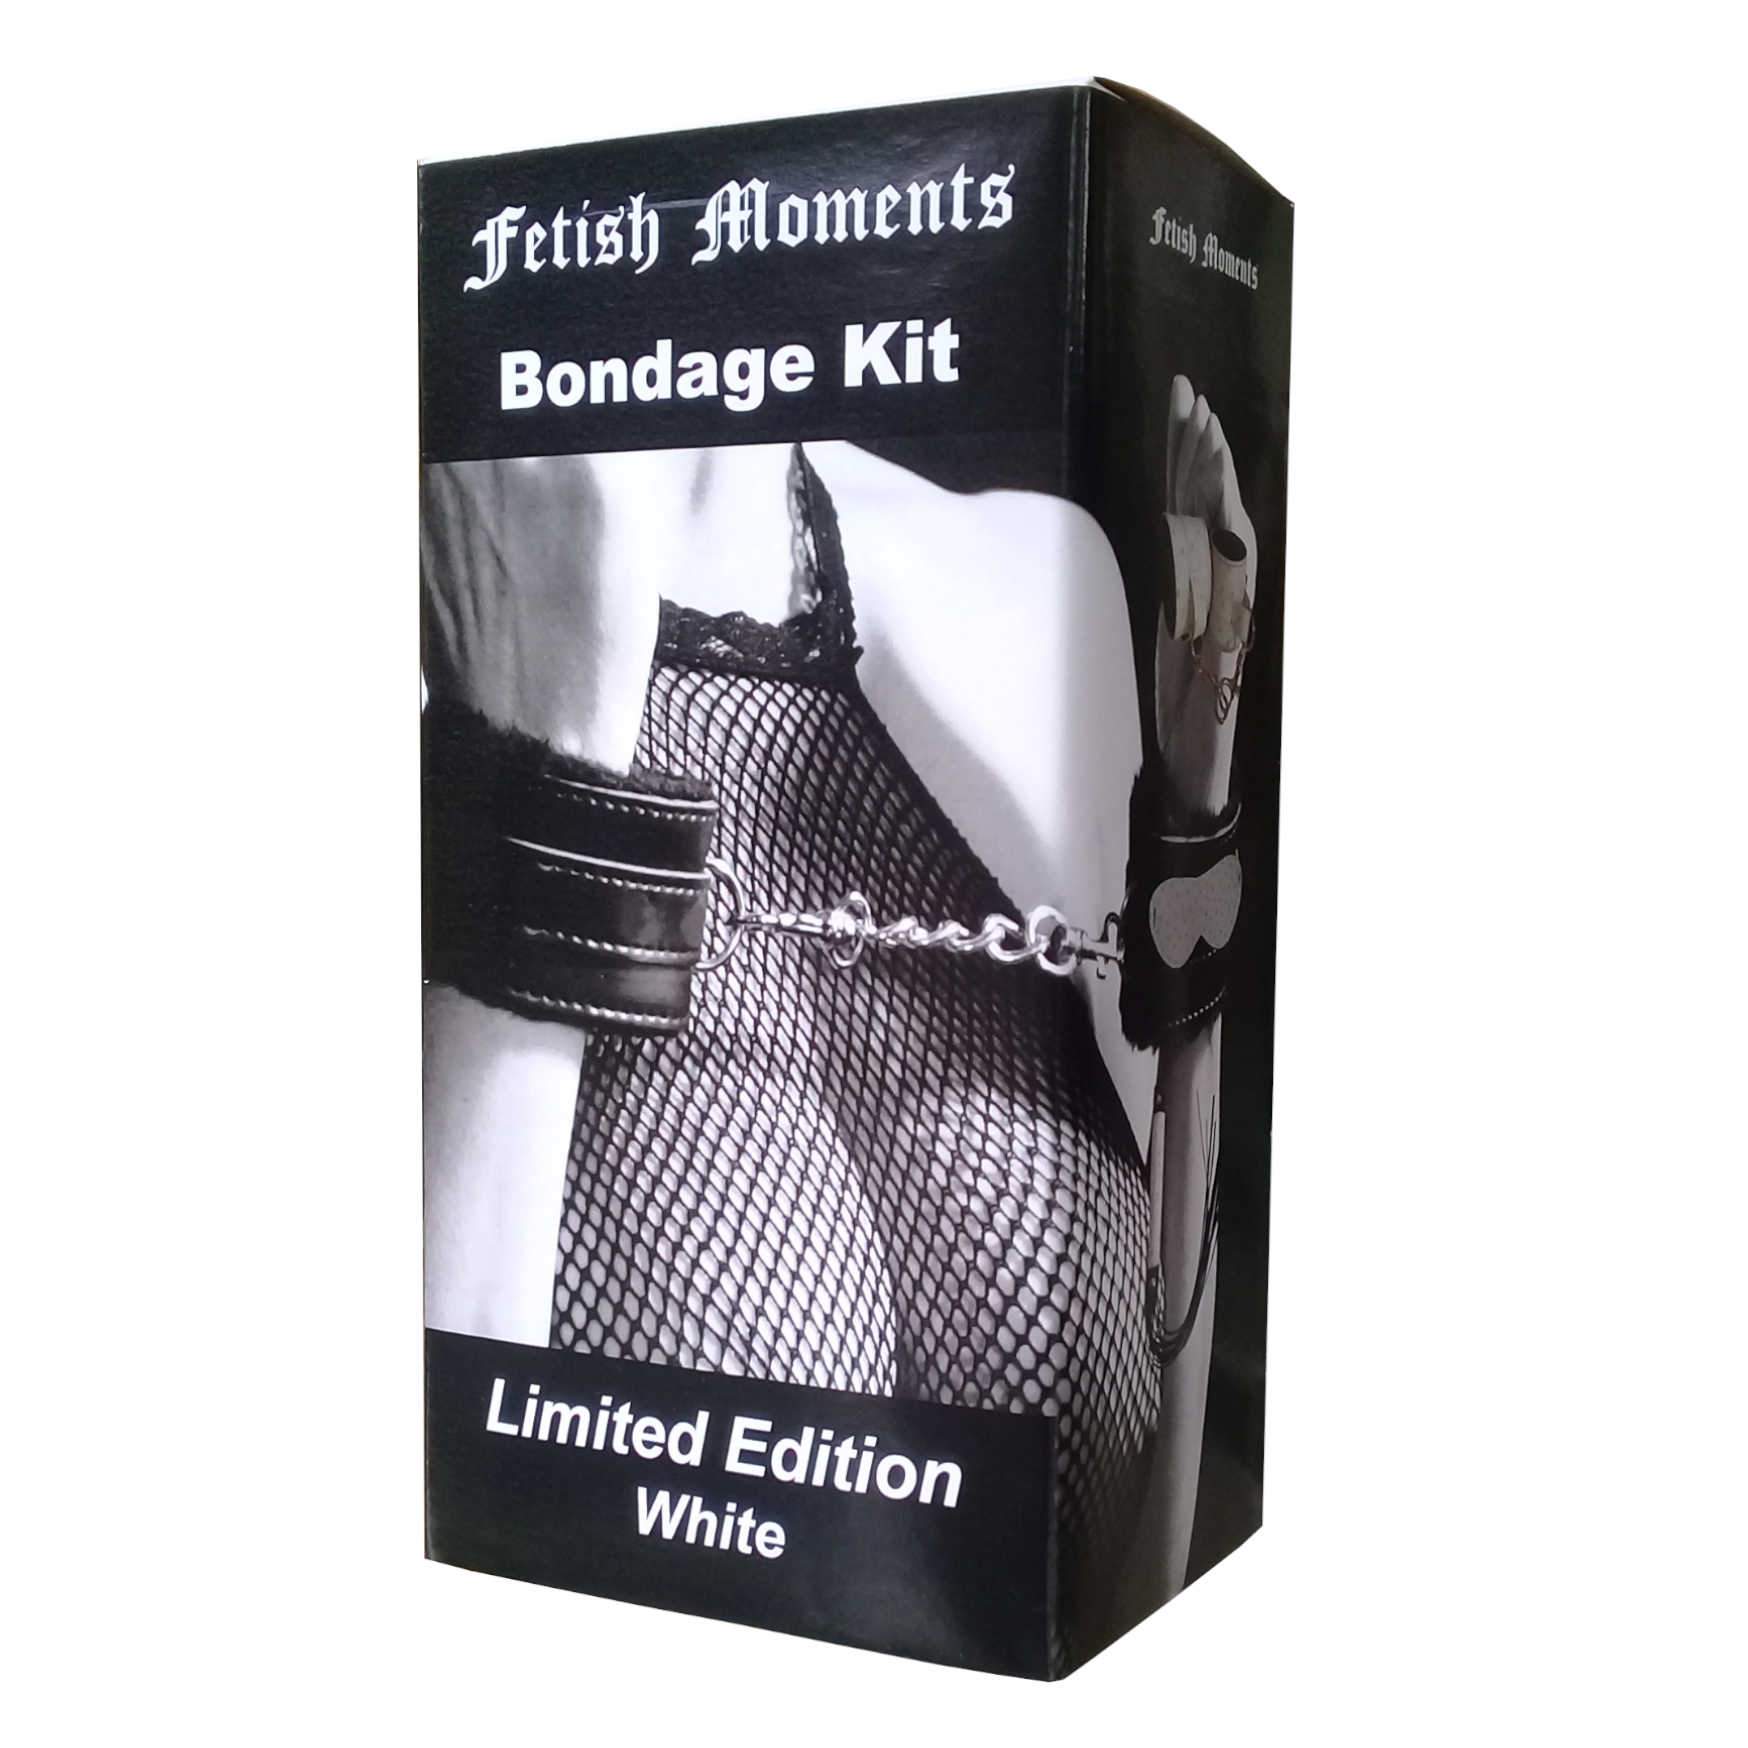 Limited Edition Bondage Kit White